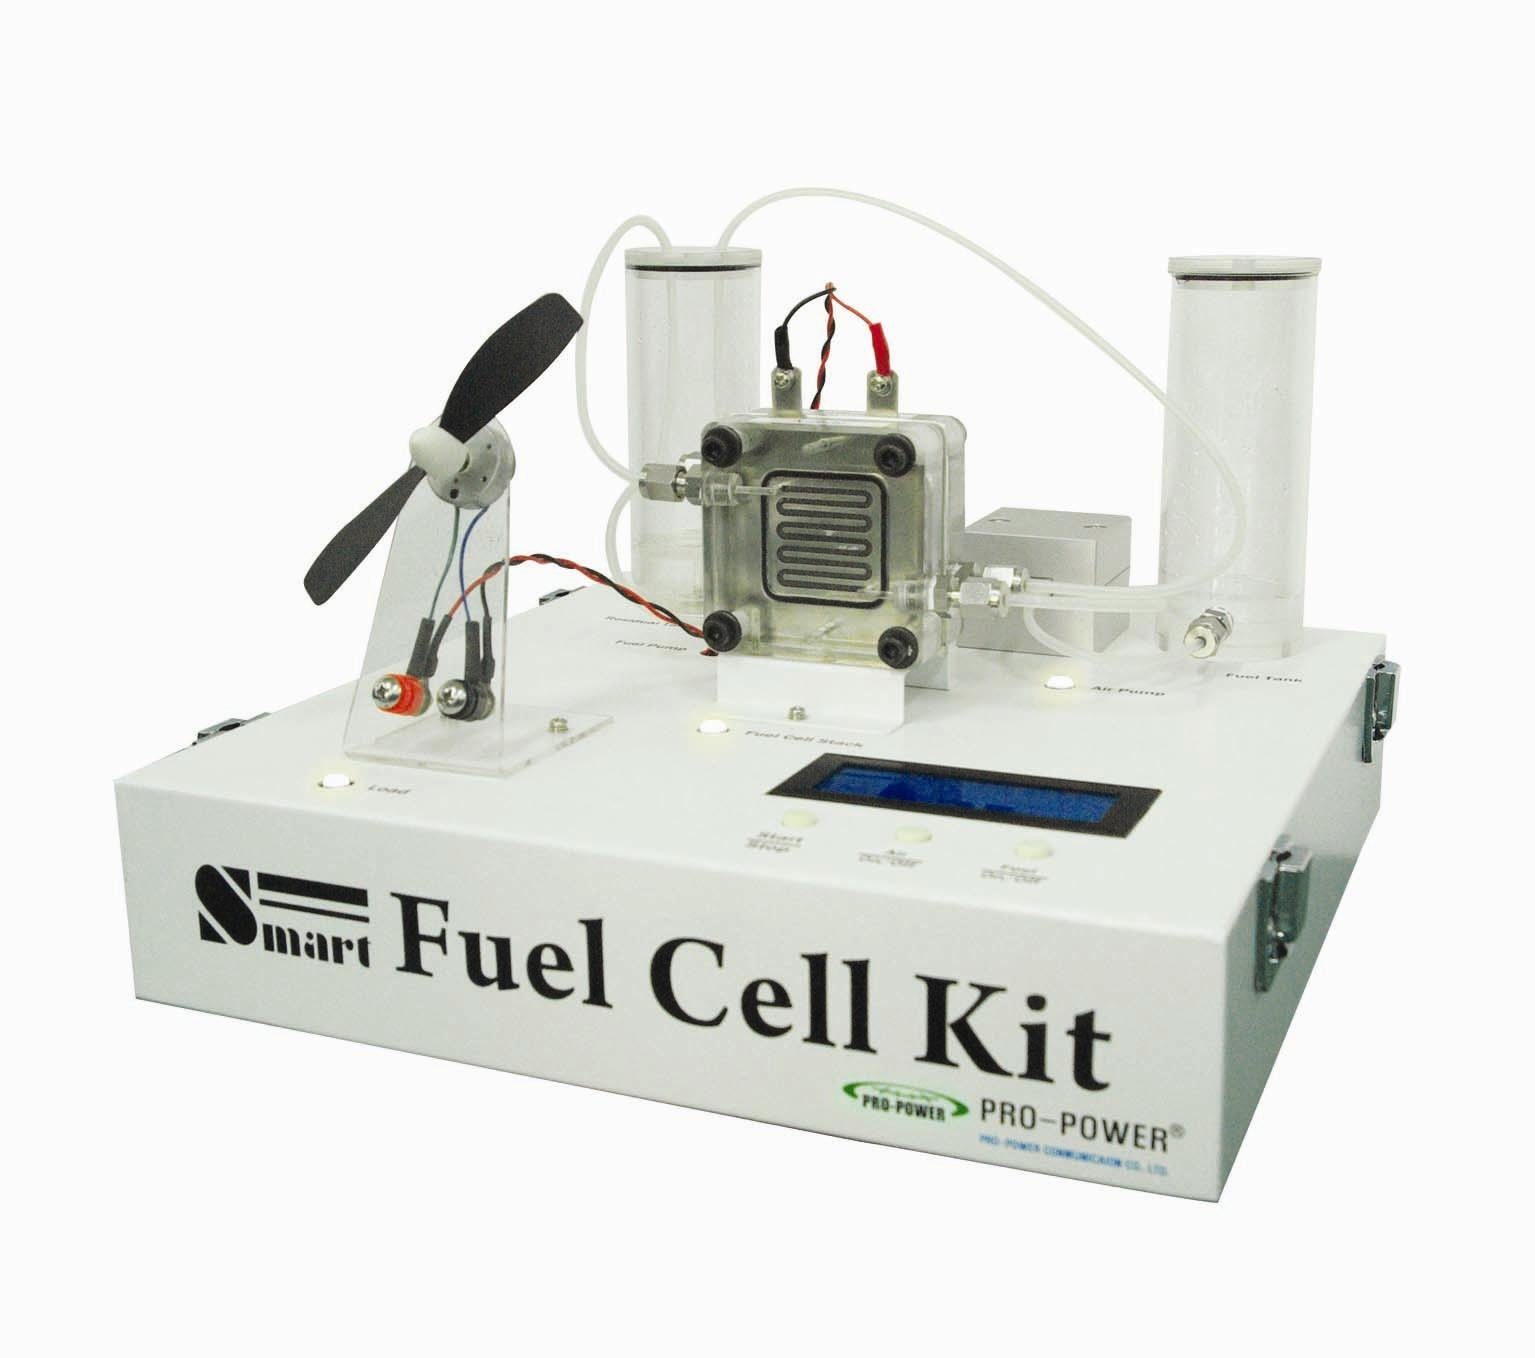 Smart Fuel Cell Kit